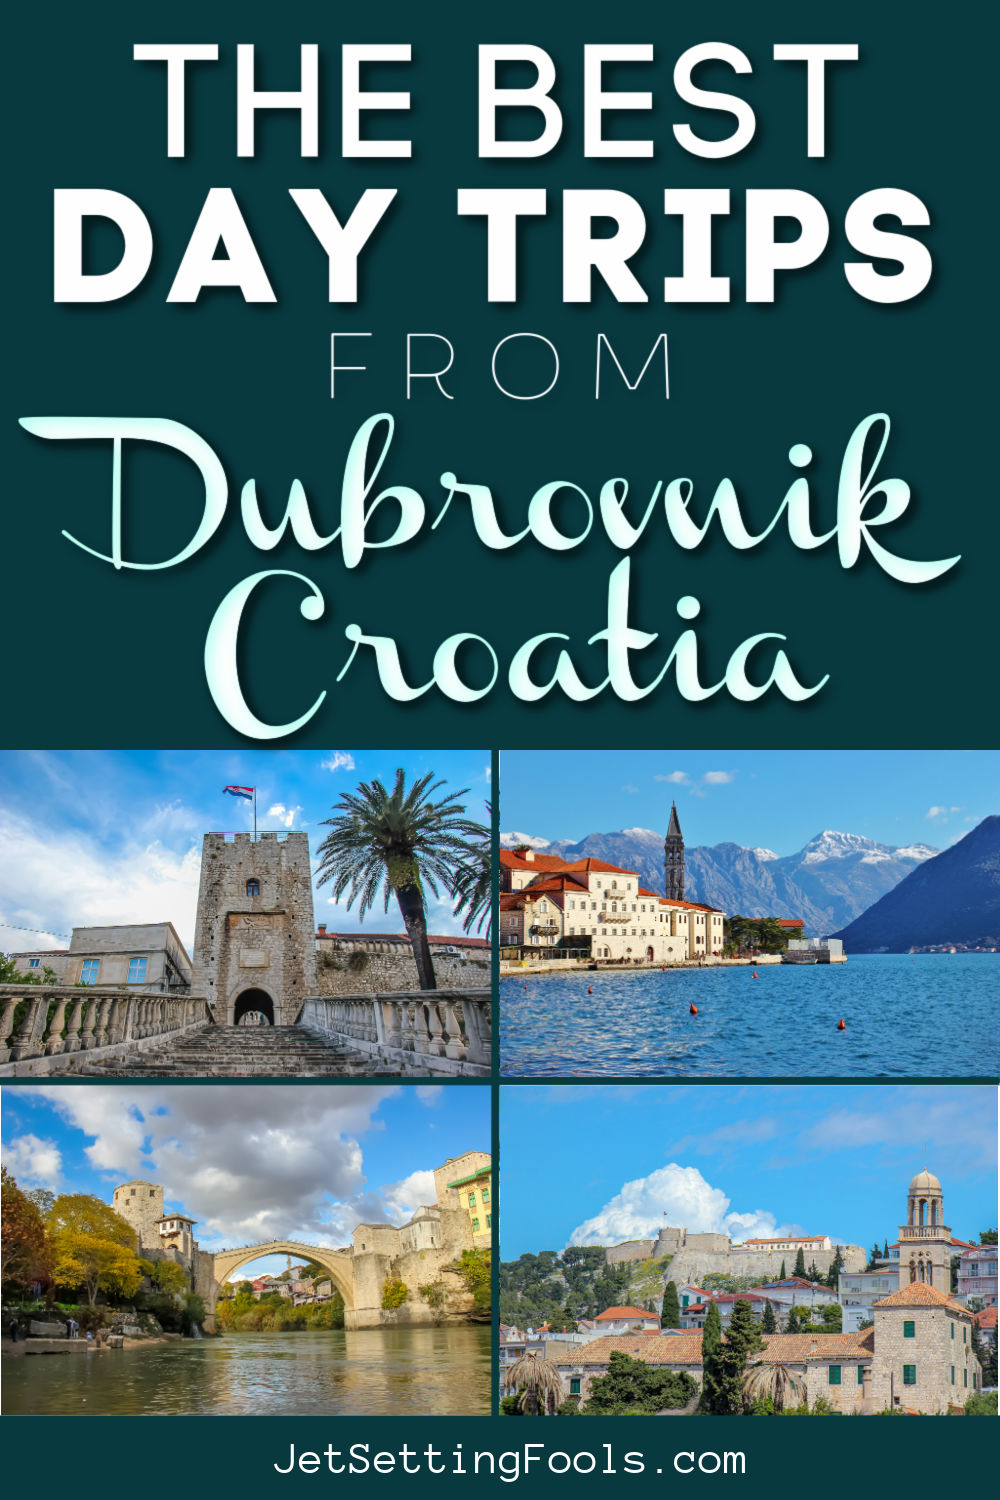 The Best Dubrovnik Day Trips by JetSettingFools.com